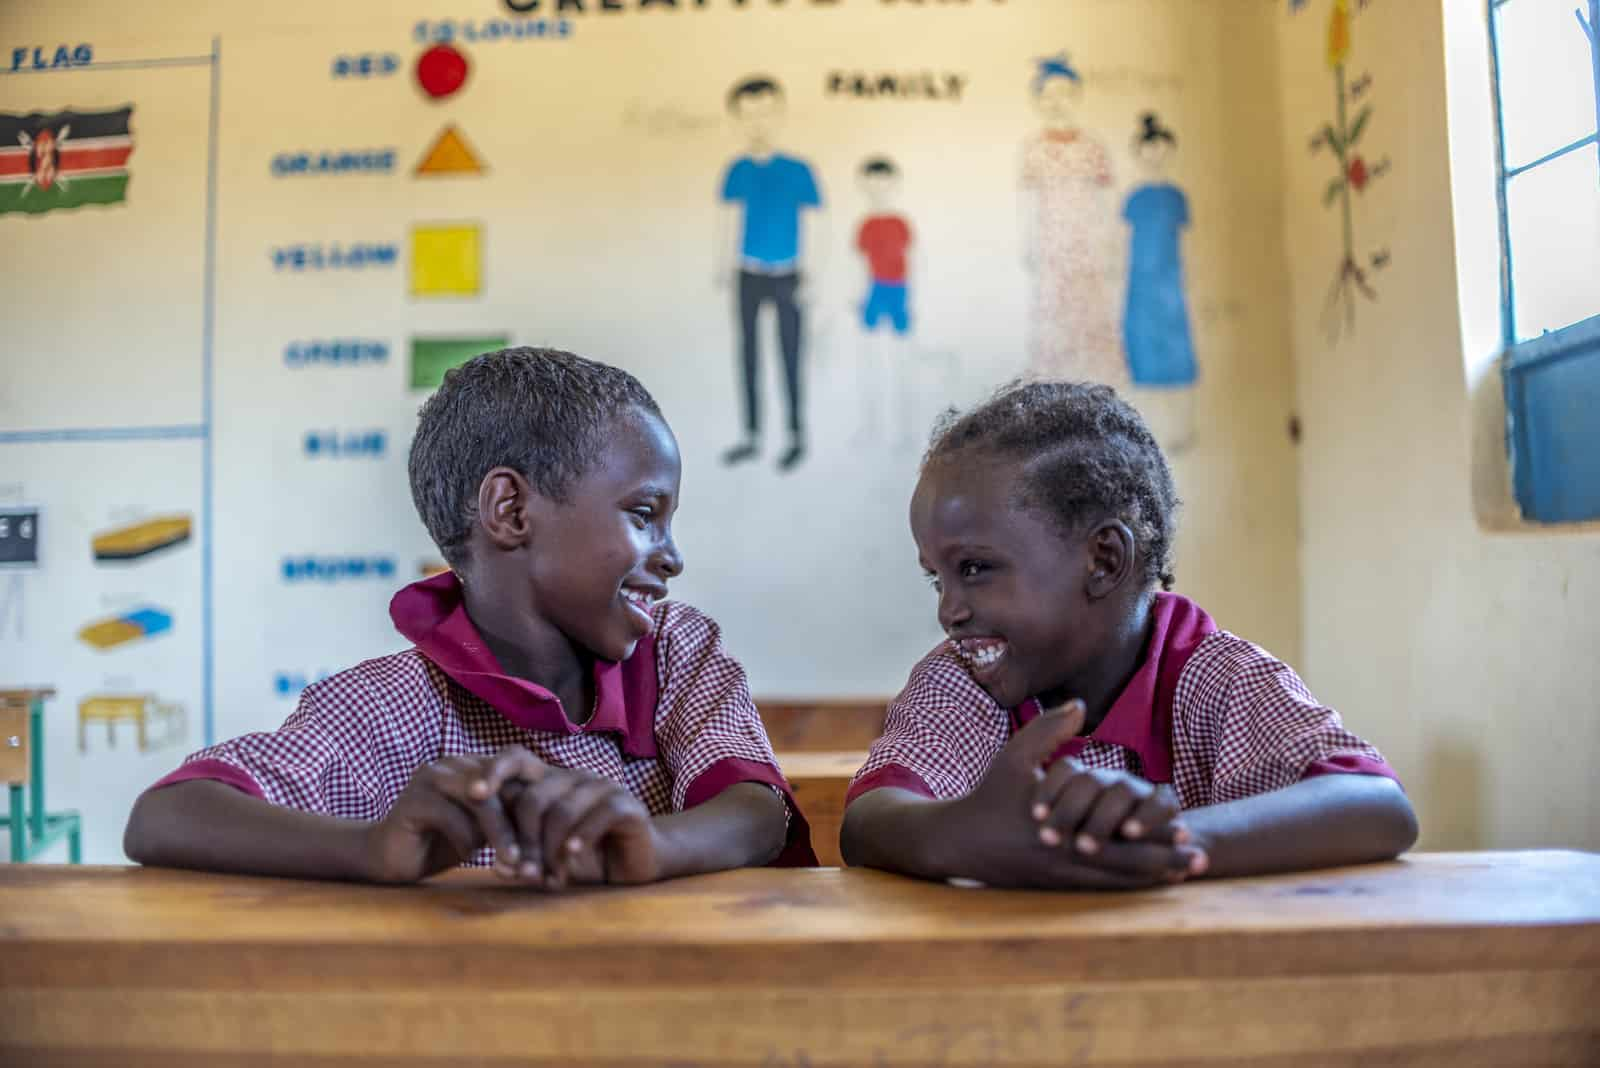 Two young girls where red checked school uniforms sit at a desk in a classroom and smile at each other.